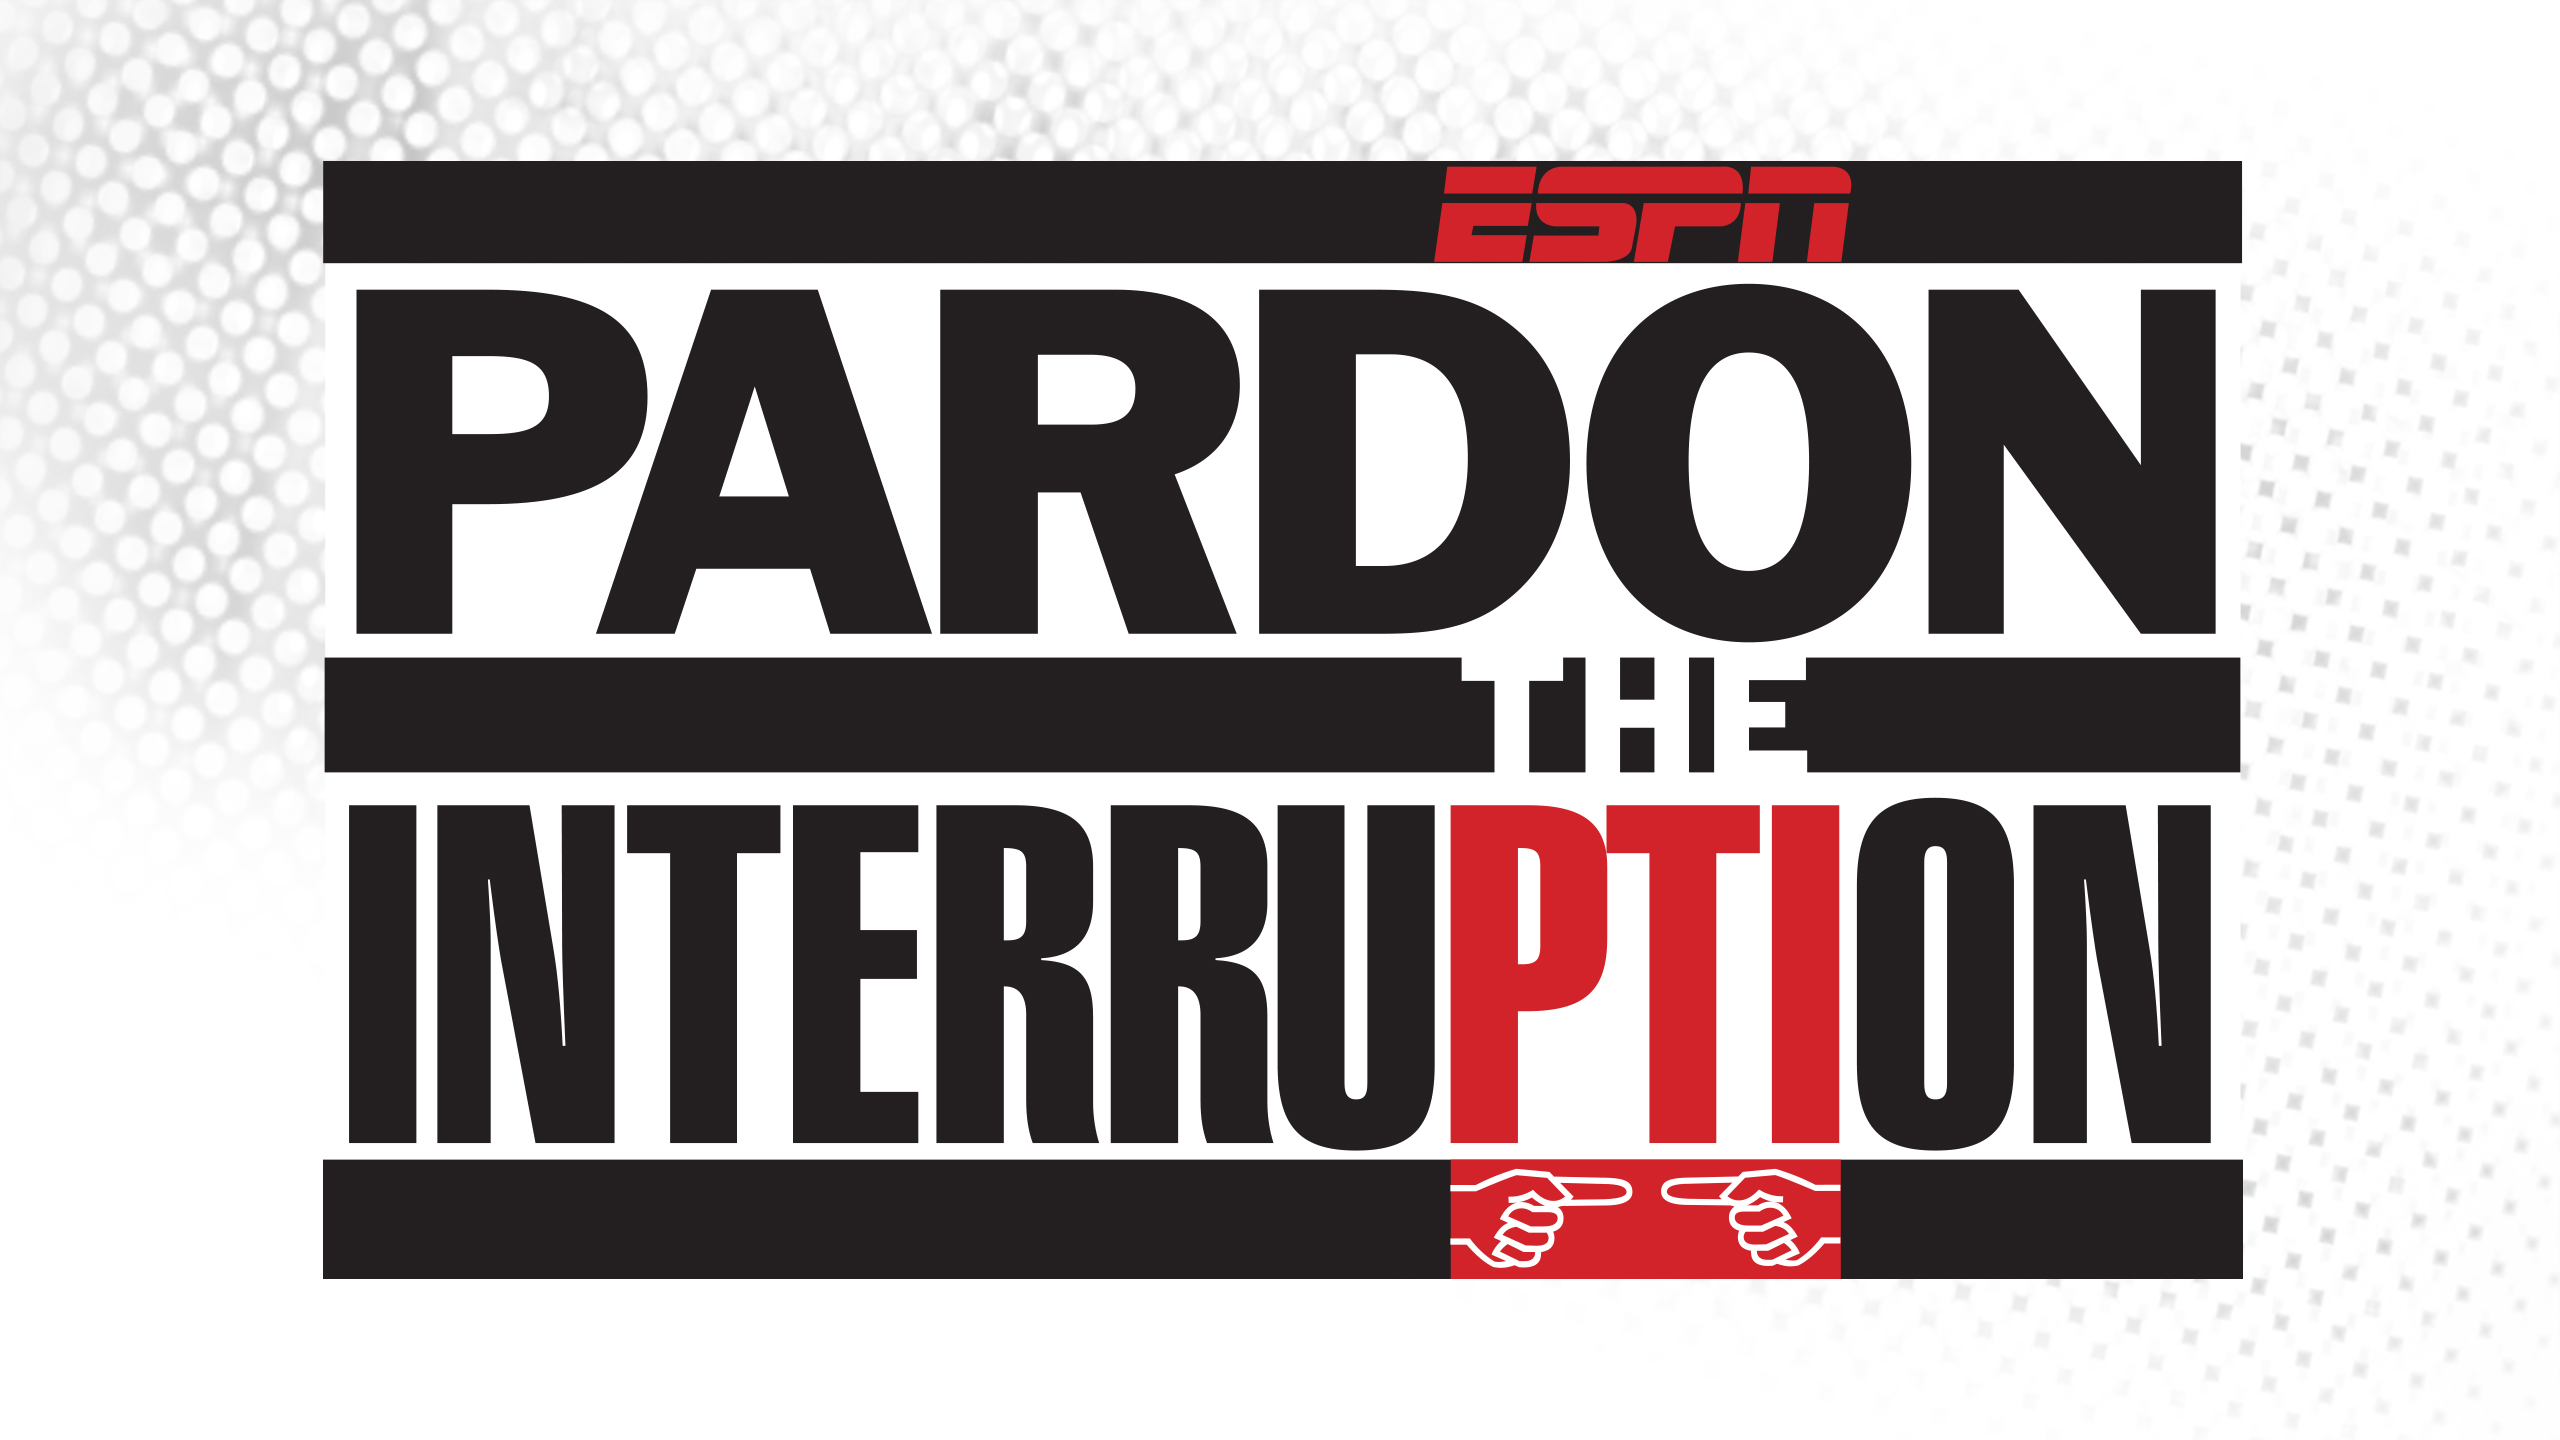 Thu, 4/18 - Pardon The Interruption